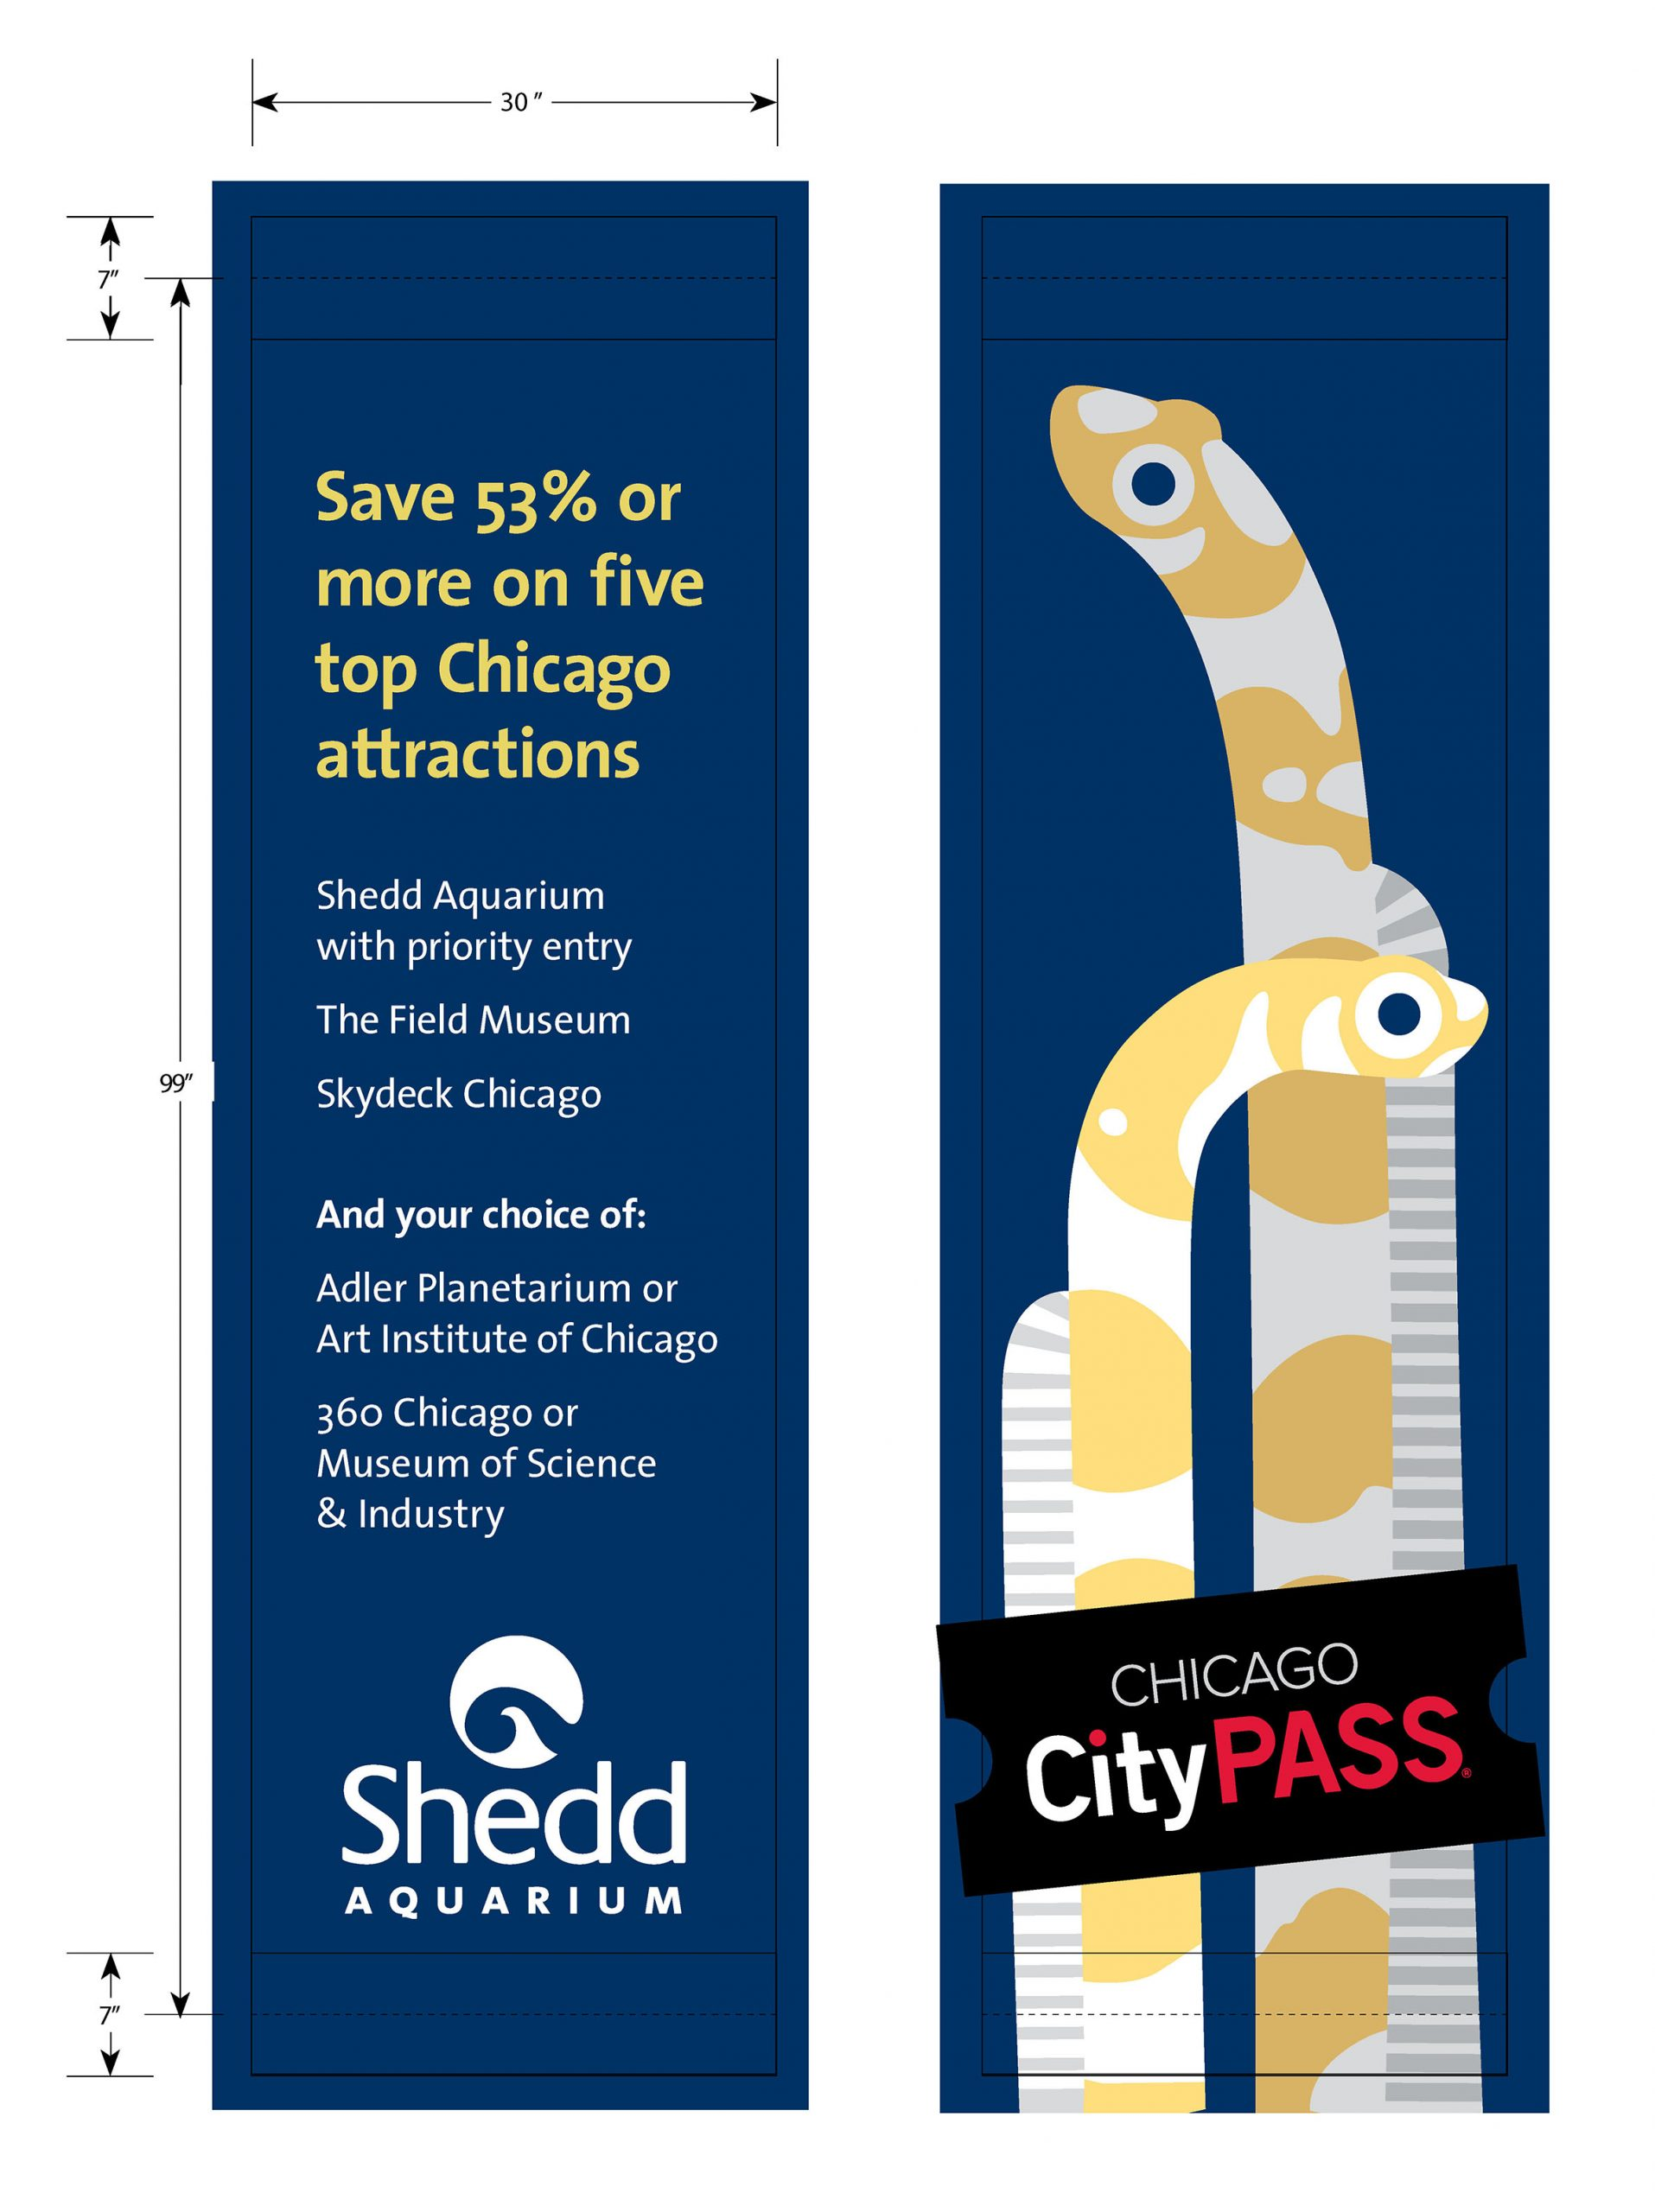 A set of street banners. The left provides information about Citypass. The right shows a stylized geometric illustration of two yellow garden eels.